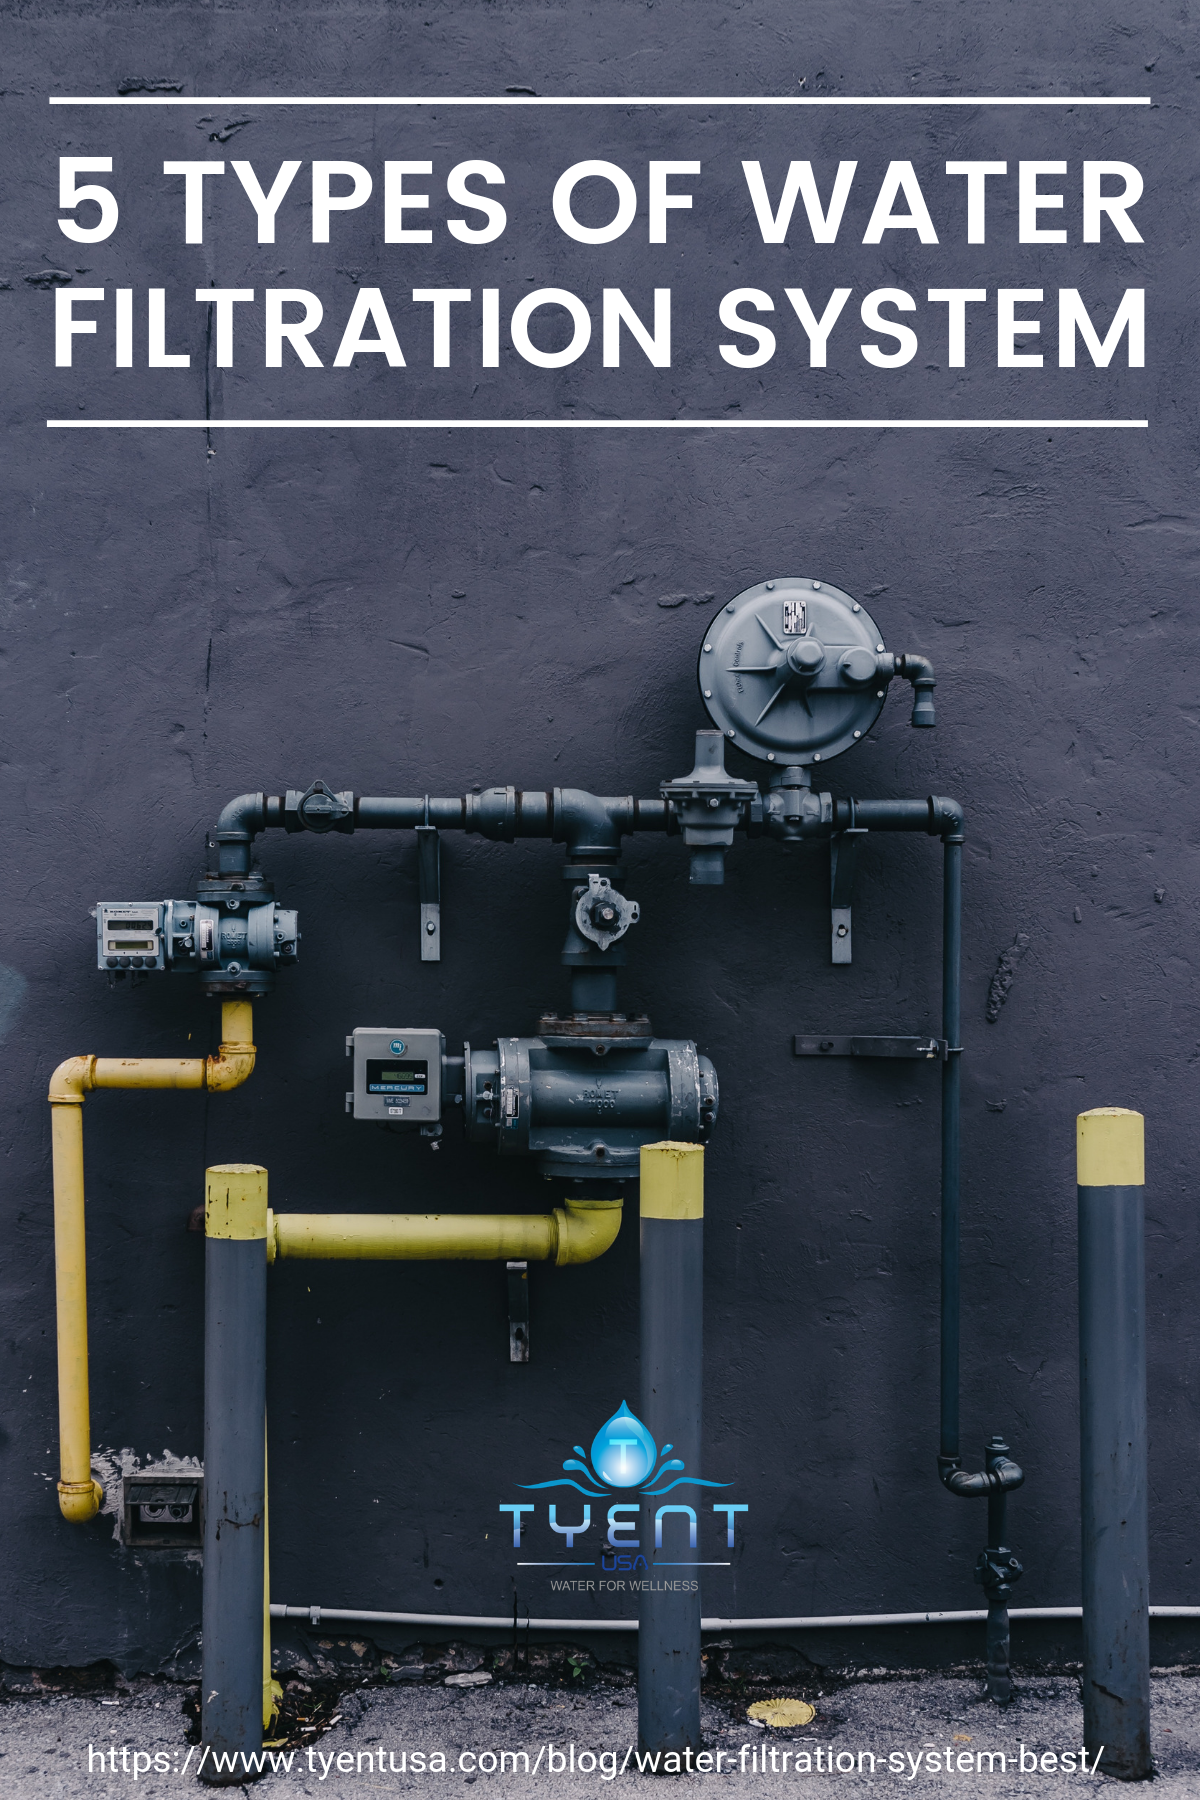 5 Types Of Water Filtration Systems https://www.tyentusa.com/blog/water-filtration-system-best/